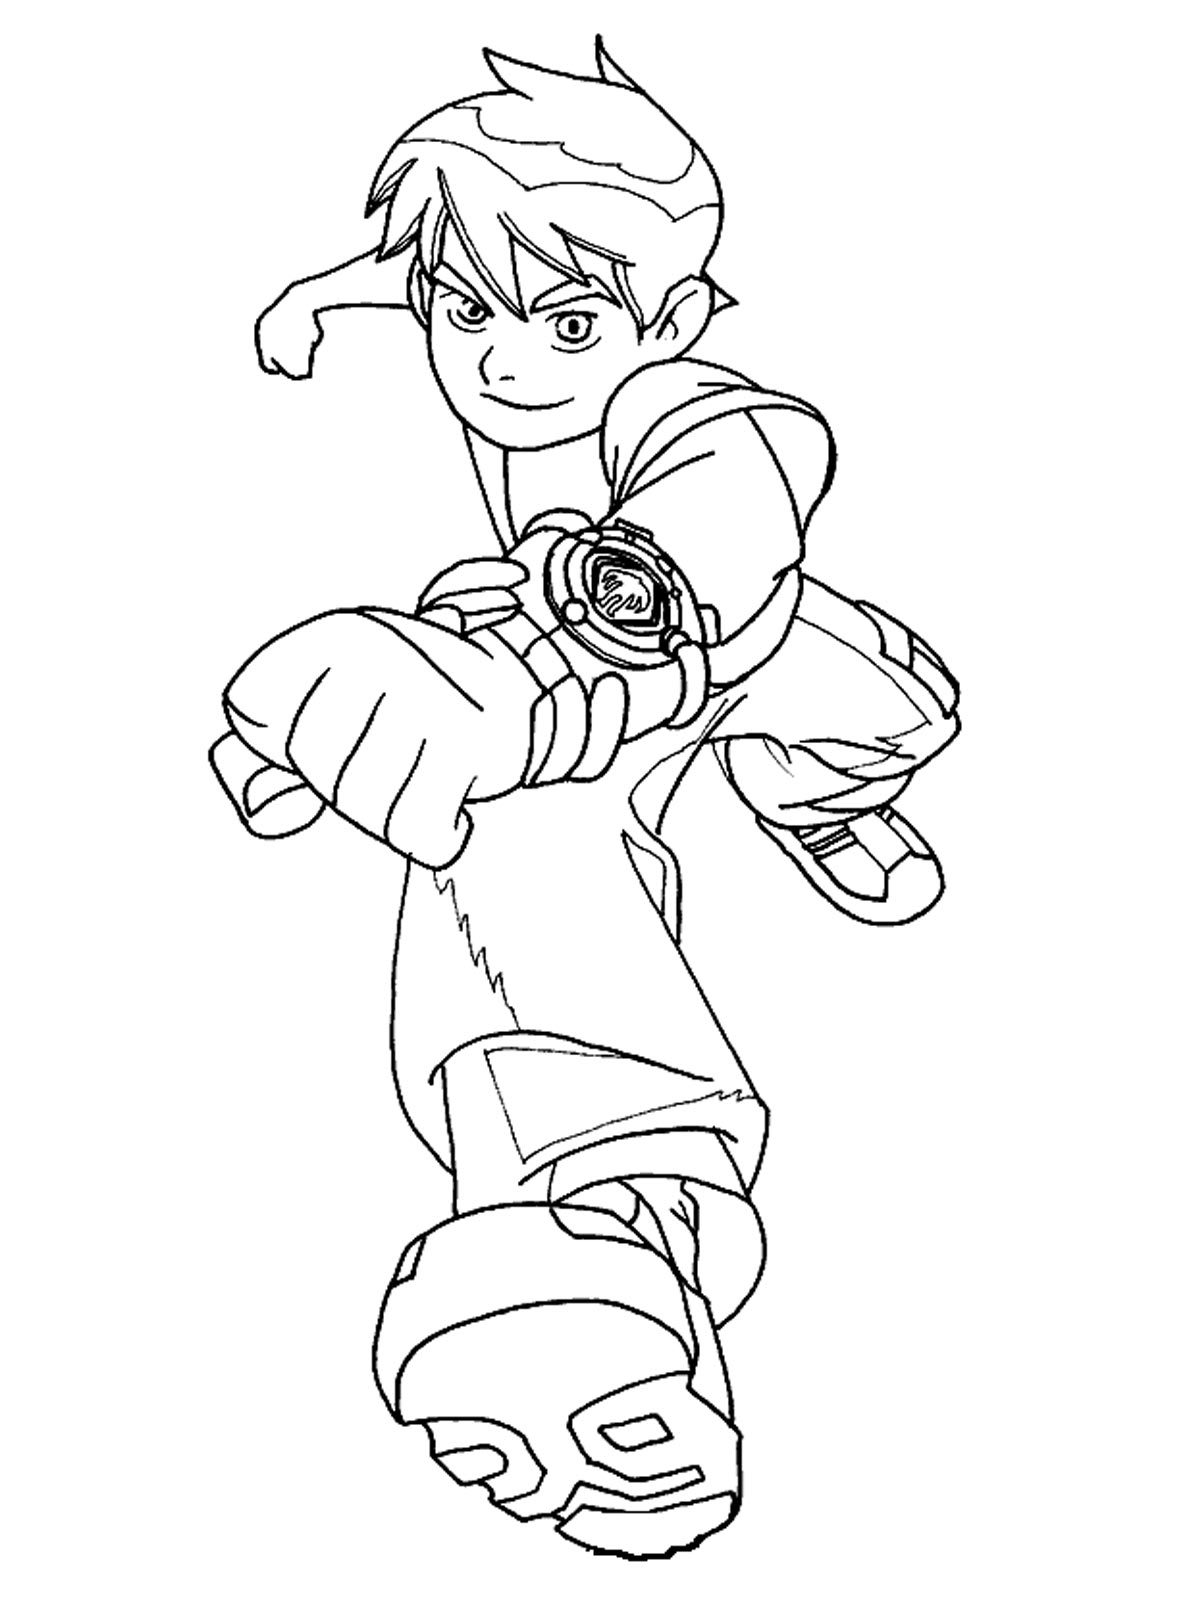 ben 10 for coloring ben 10 coloring pages minister coloring ben coloring for 10